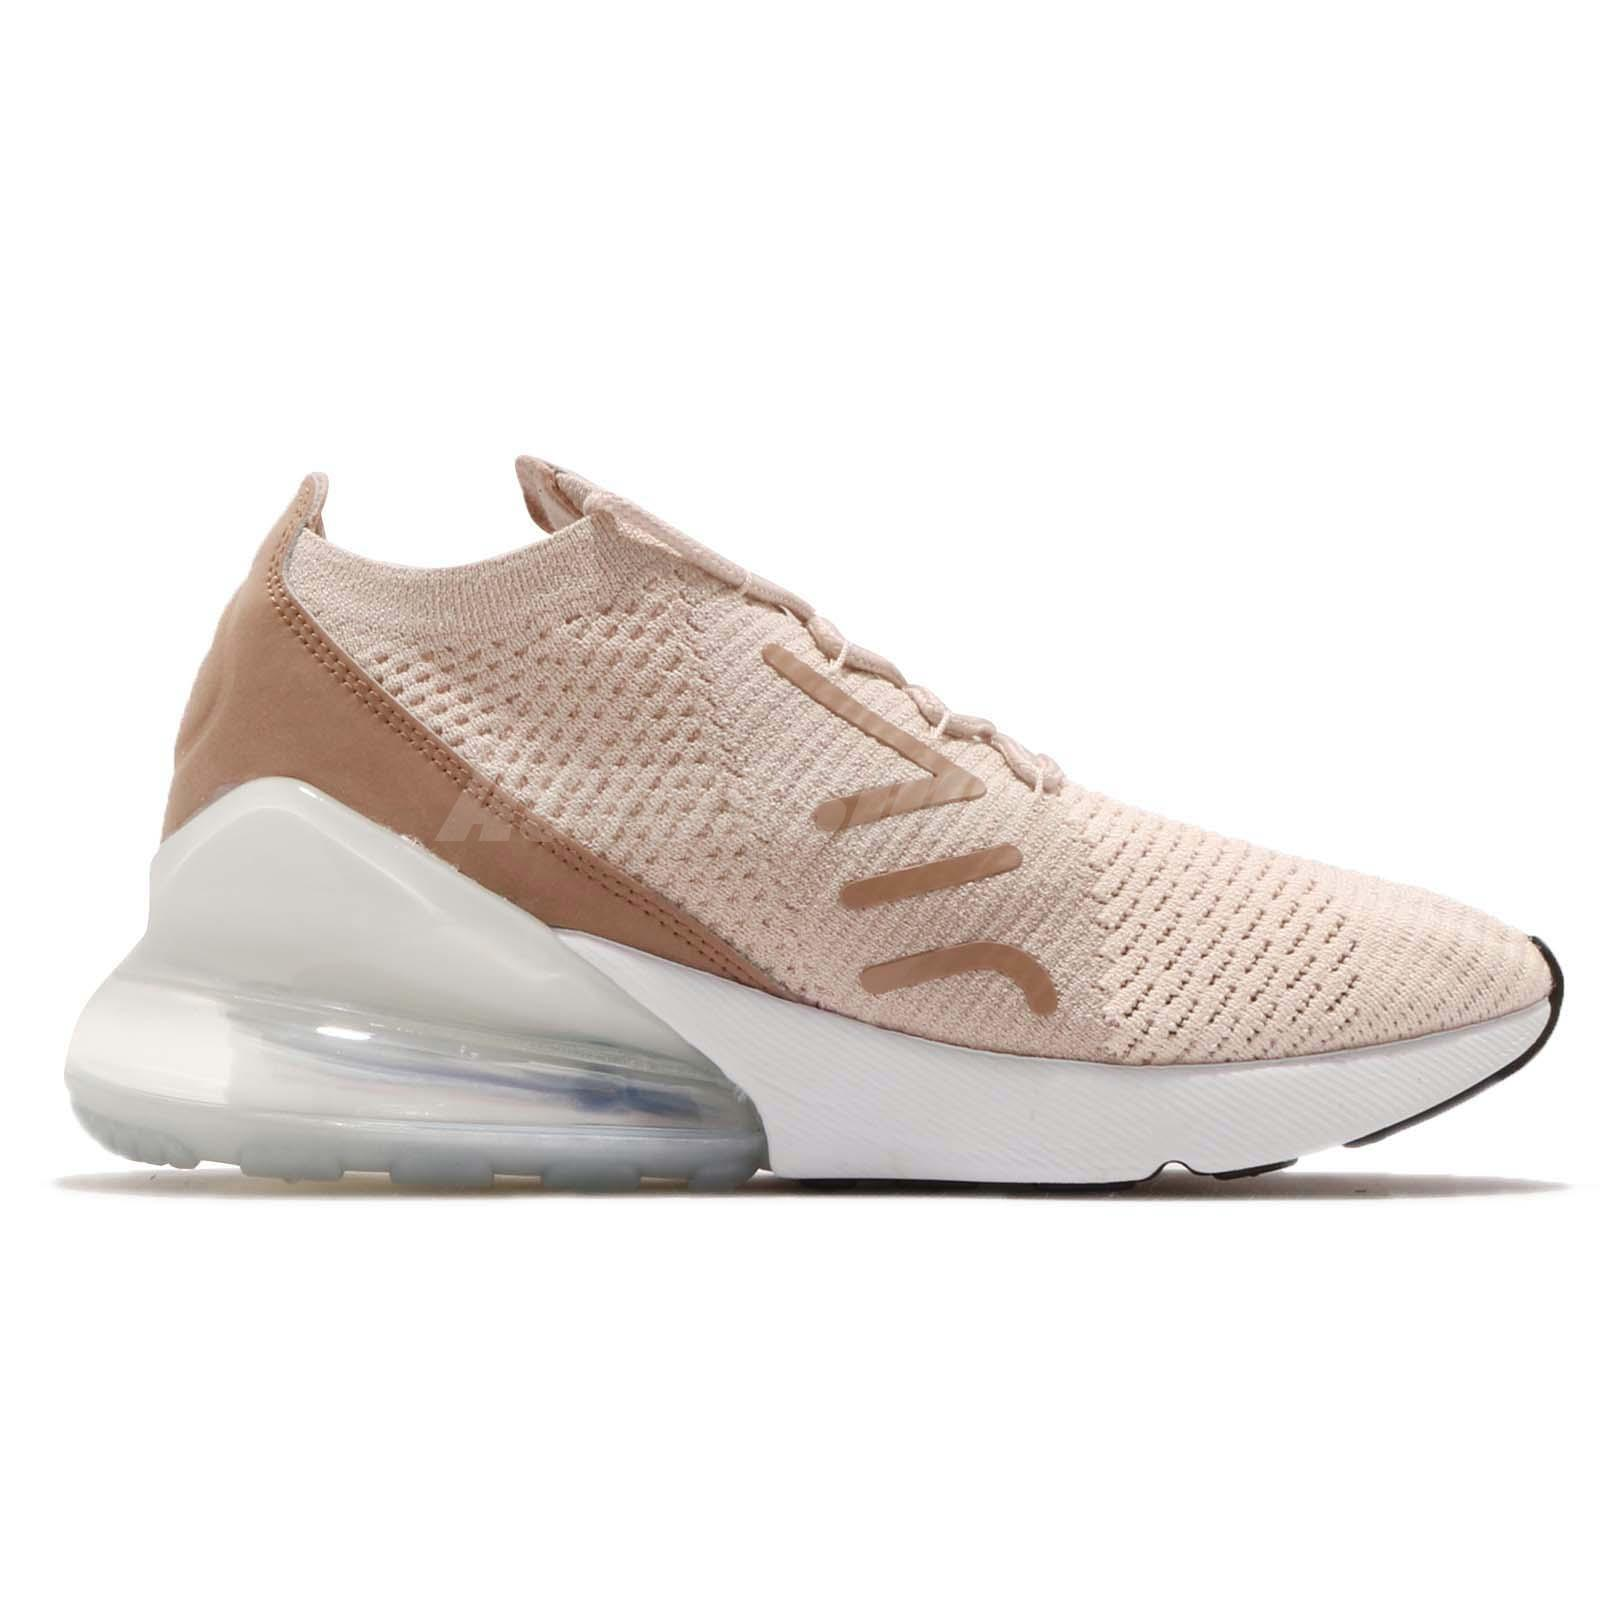 84c73ae01b Nike Wmns Air Max 270 Flyknit Guava Ice Particle Beige Women Shoes ...